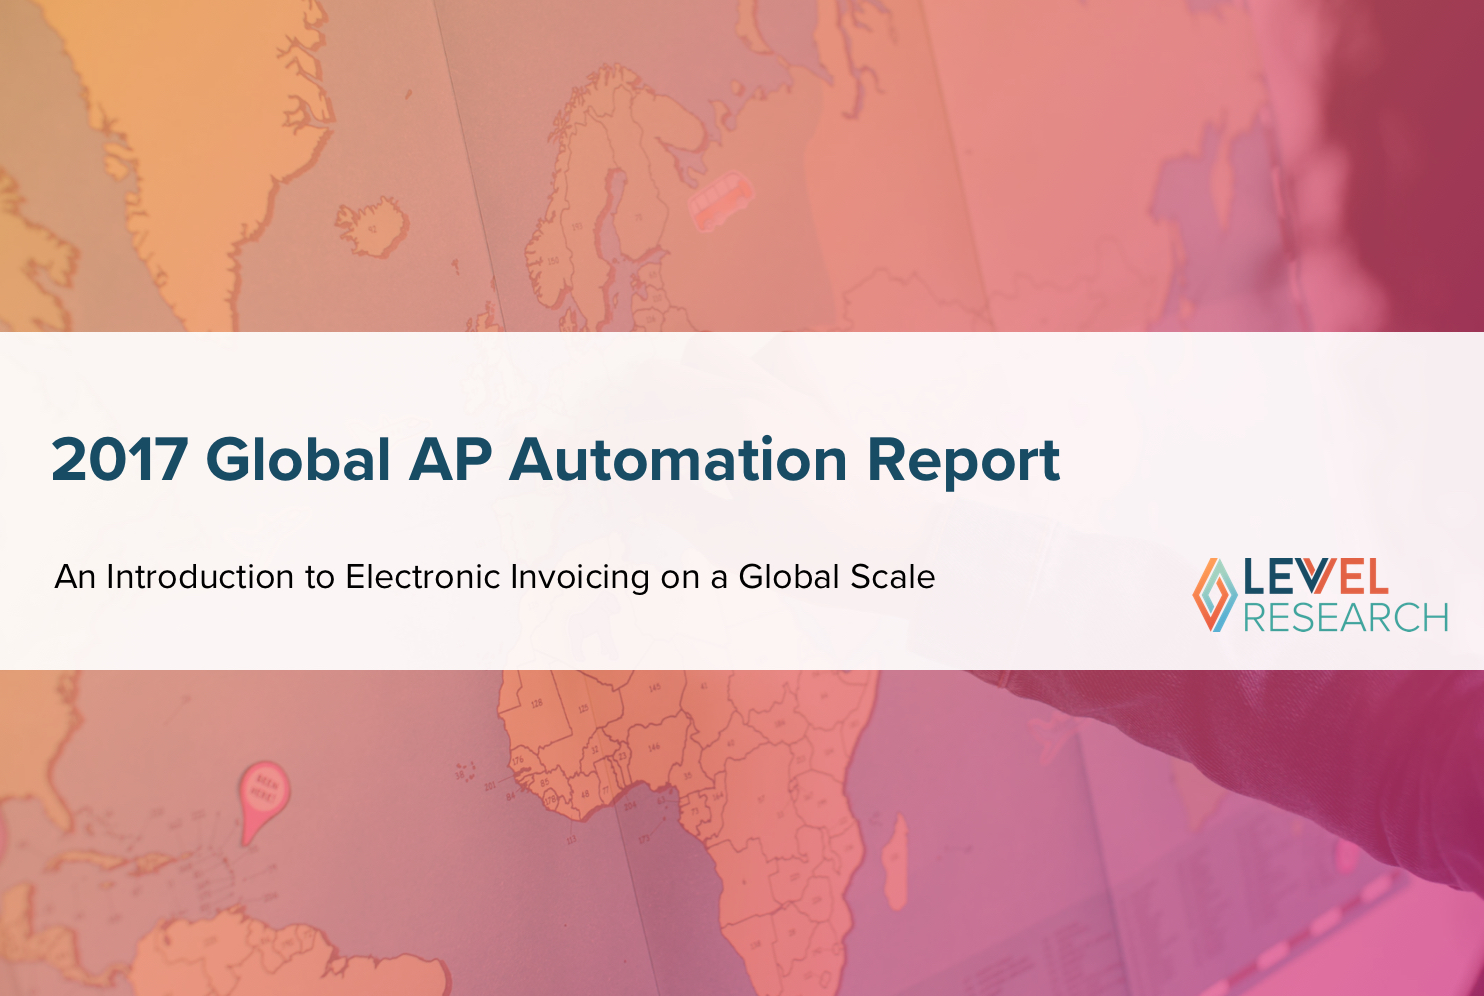 2017 Global AP Automation Report